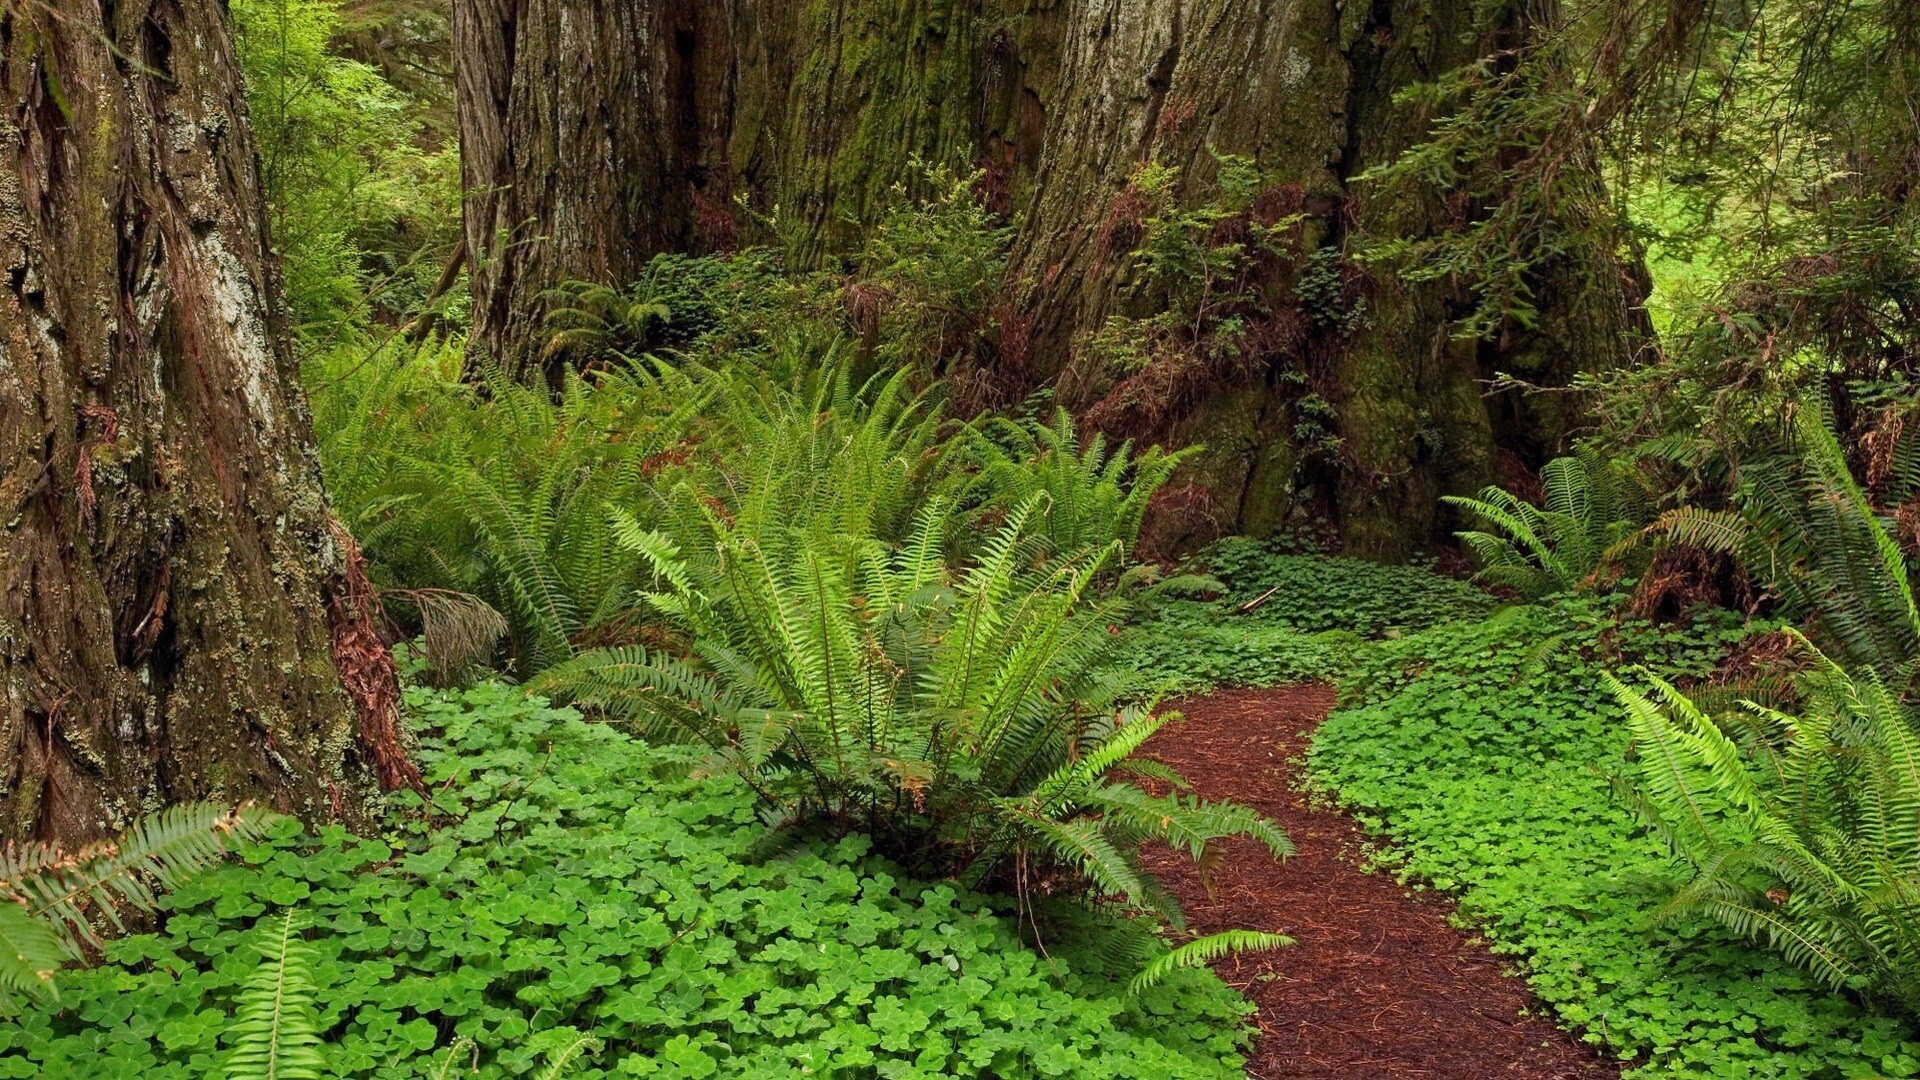 Green Forest Nature Image